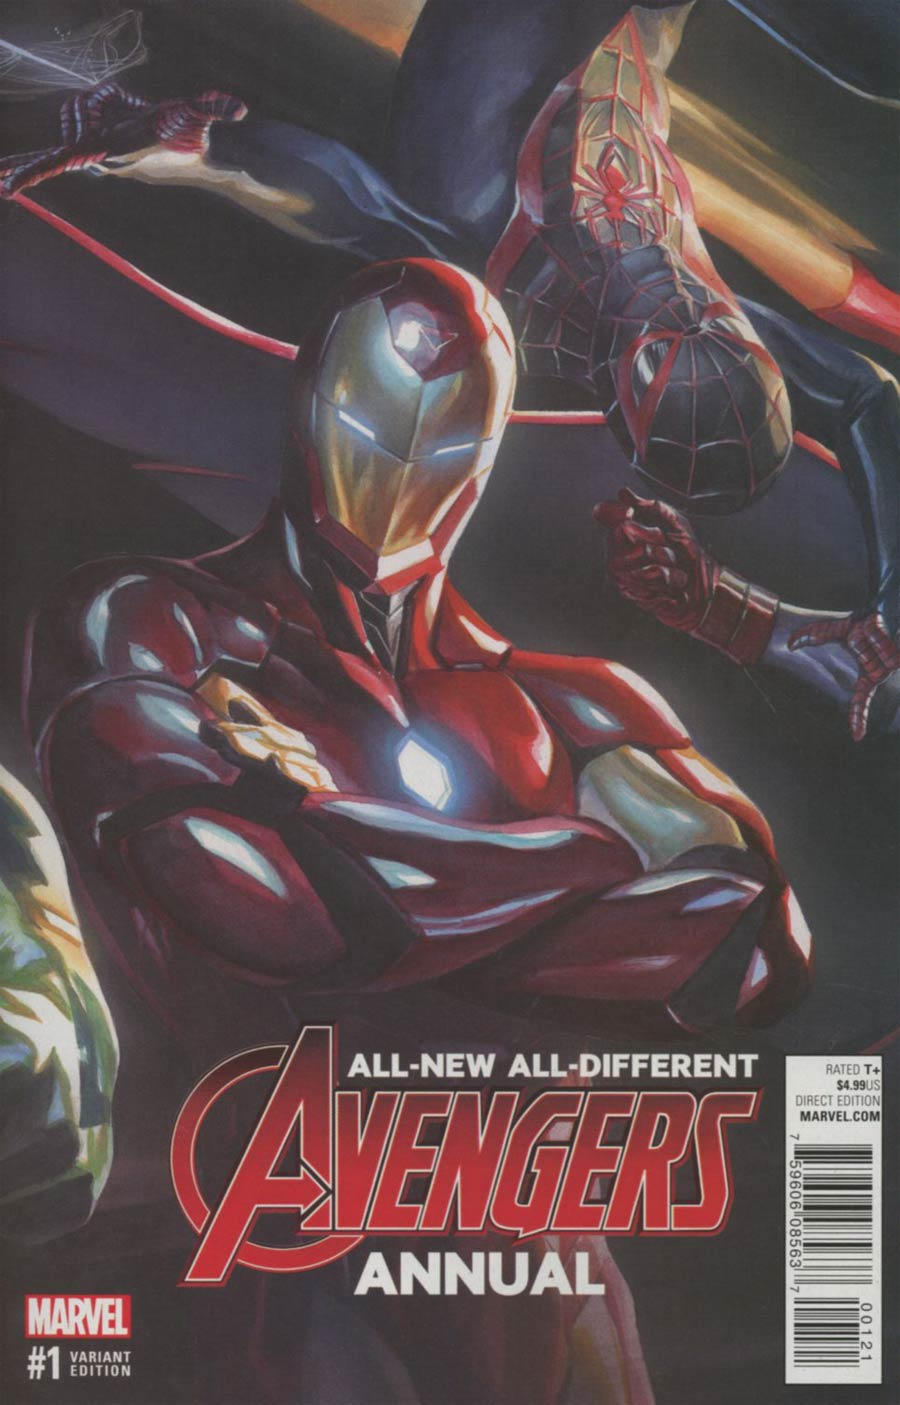 All-New All-Different Avengers Annual #1 Cover B Variant Alex Ross Linking 3 Cover